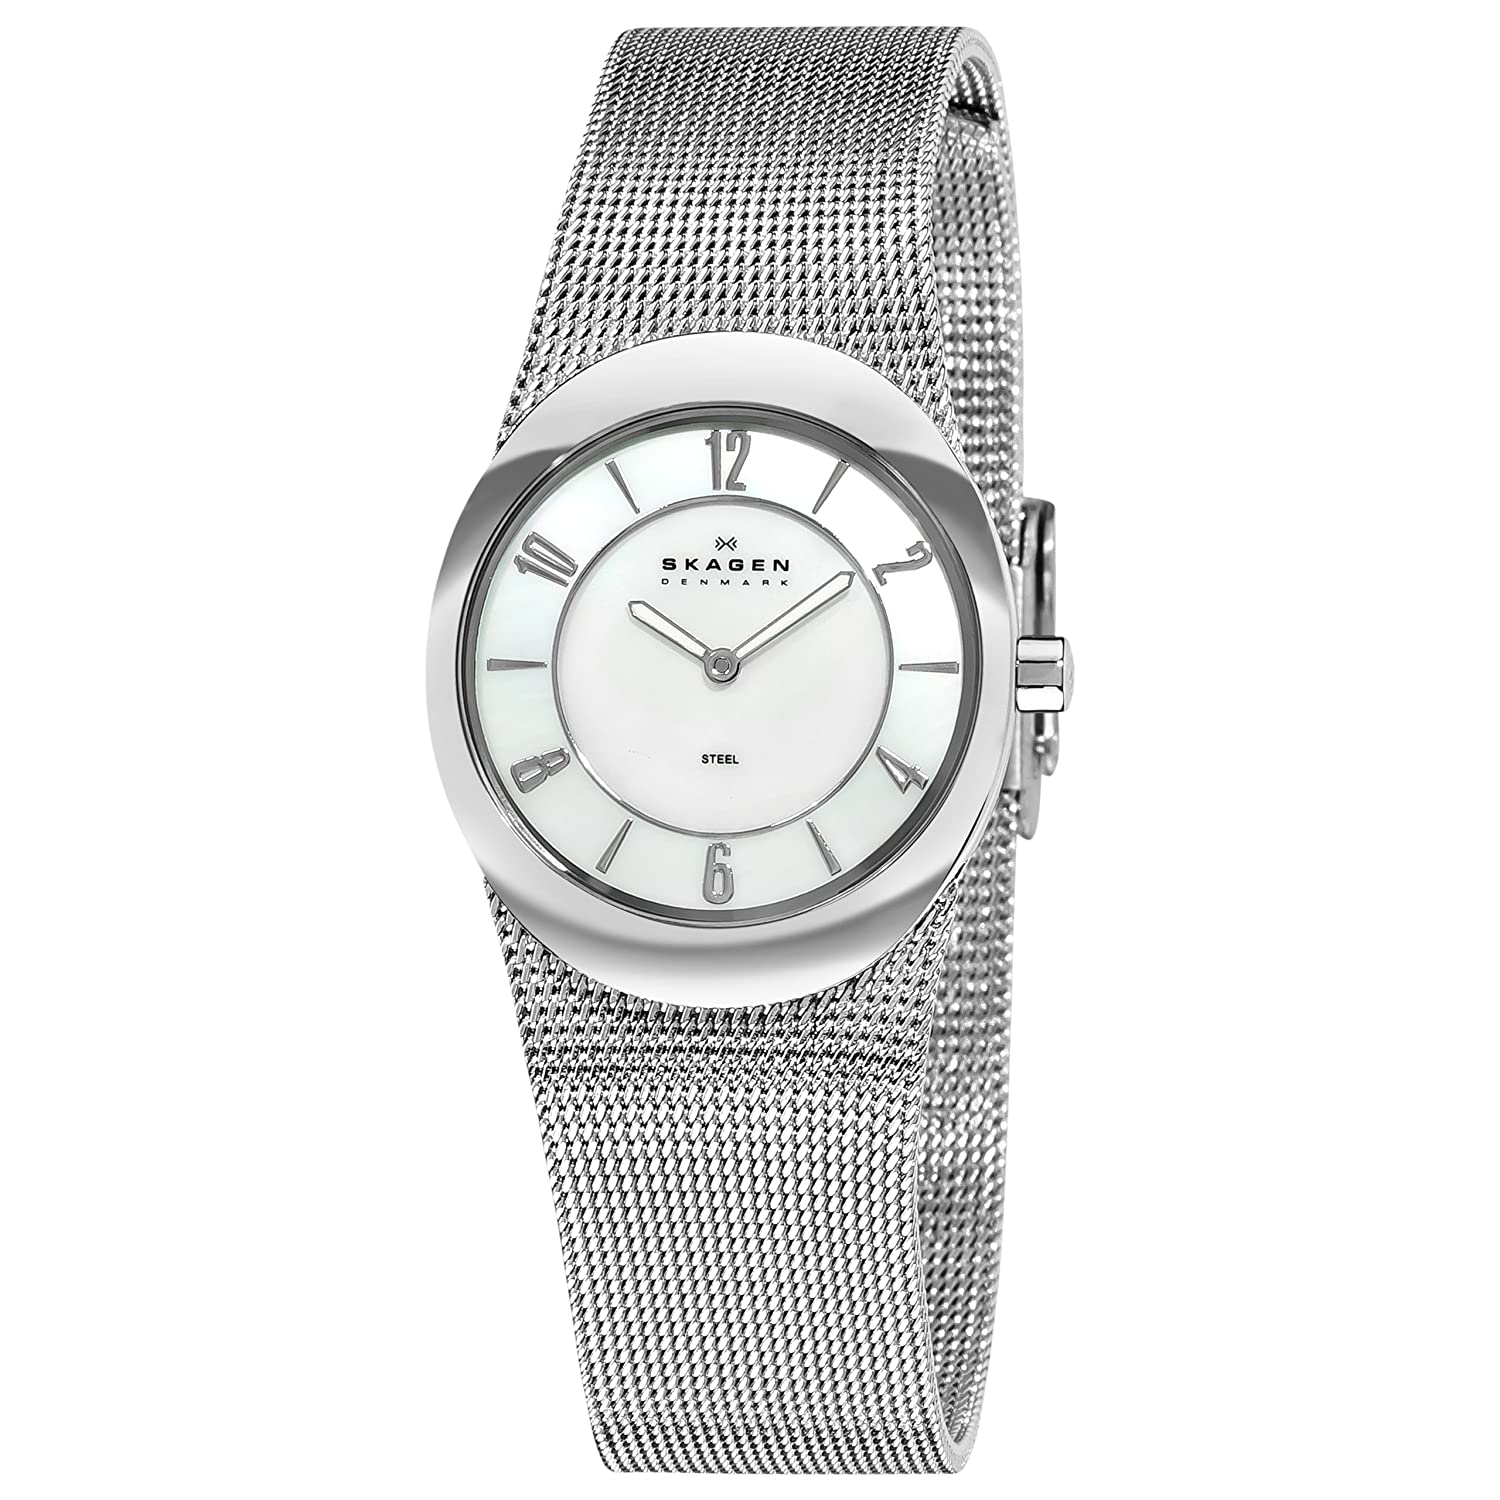 Skagen Women&#8217;s 564XSSSMP Steel Mother-Of-Pearl Arabic Numeral Dial Watch $65.00